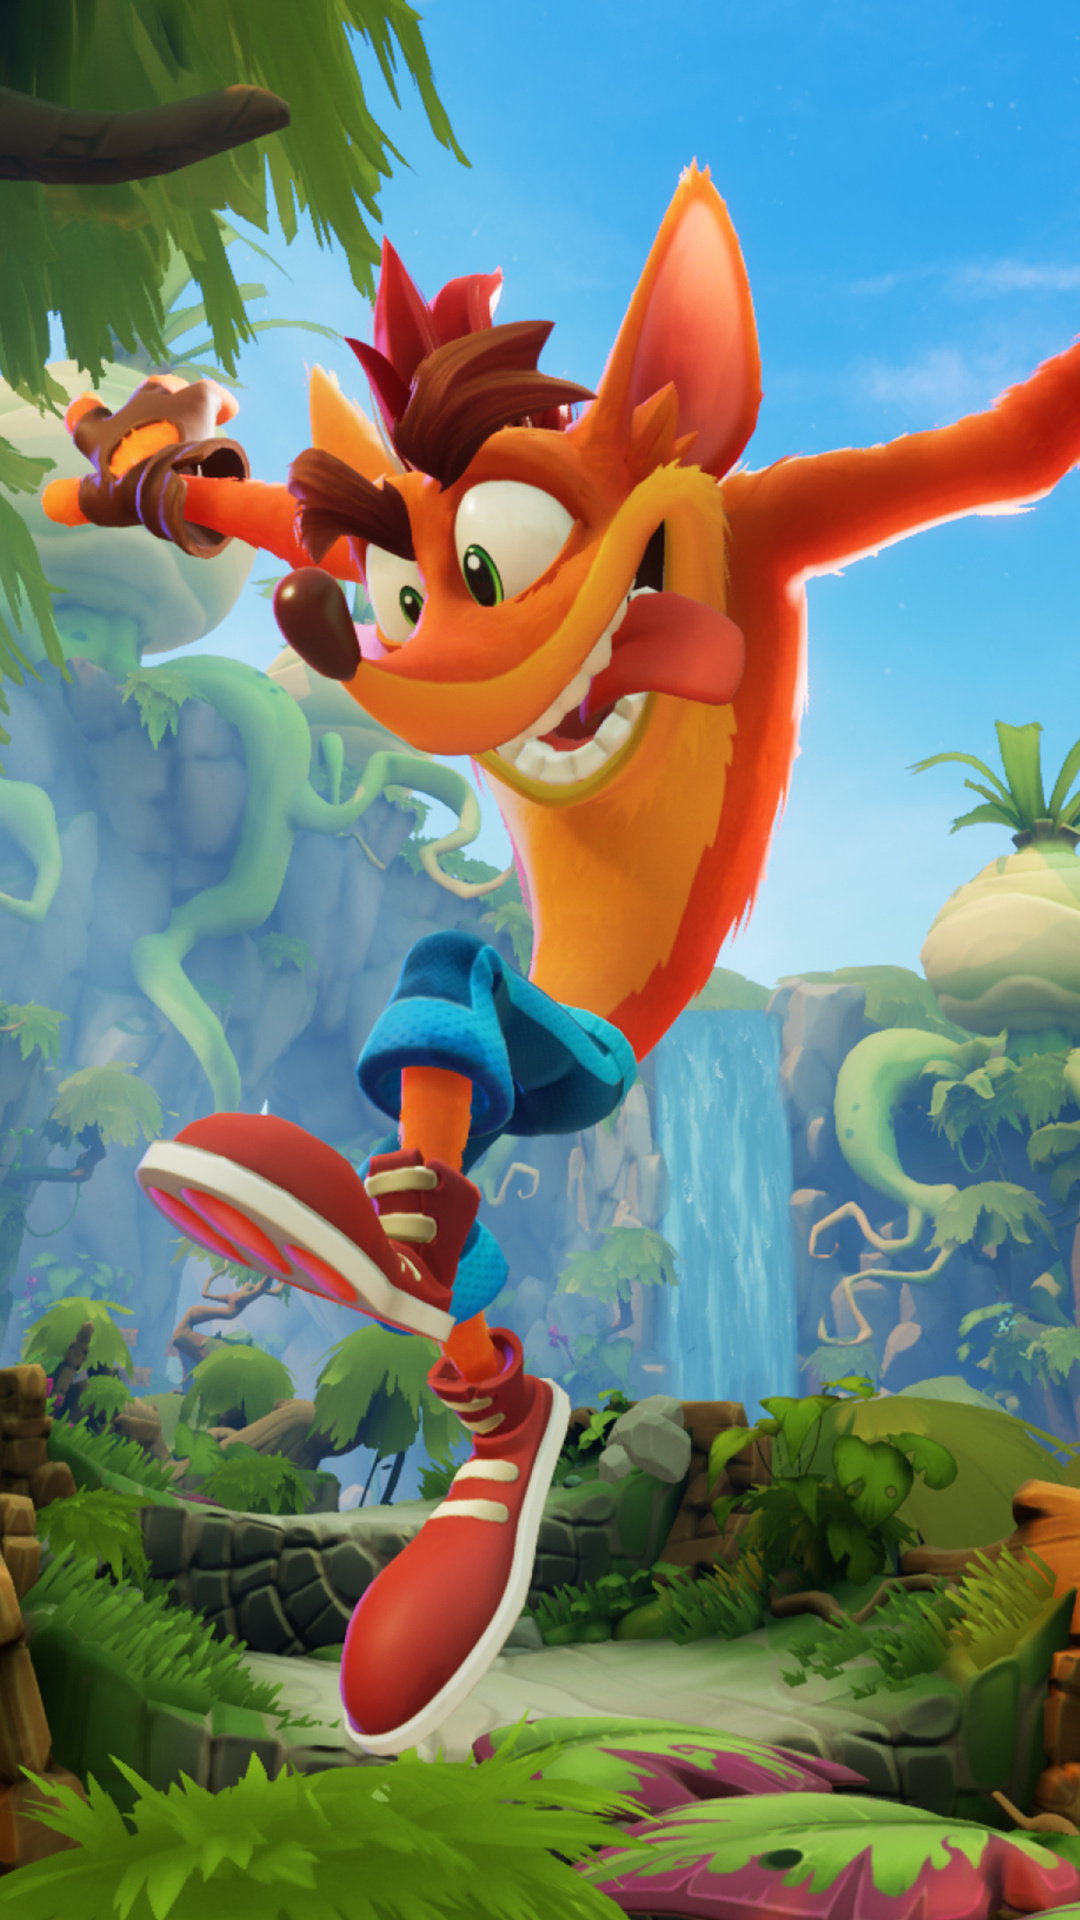 1080x1920 Crash Bandicoot 4 Its About Time Ps5 Iphone 7,6s ...